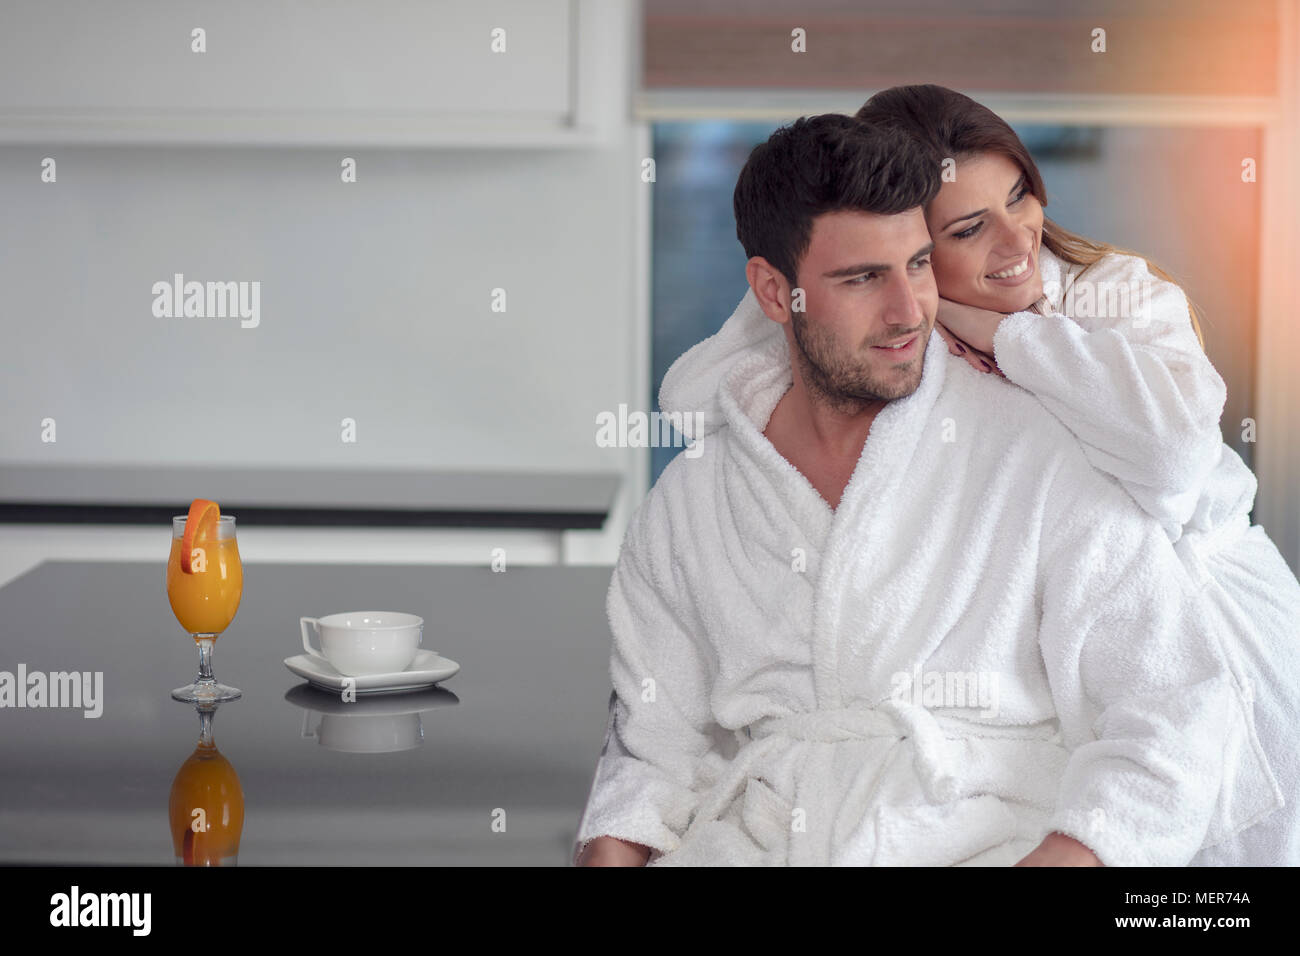 Portrait of a man and his wife in the kitchen while having breakfast - Stock Image